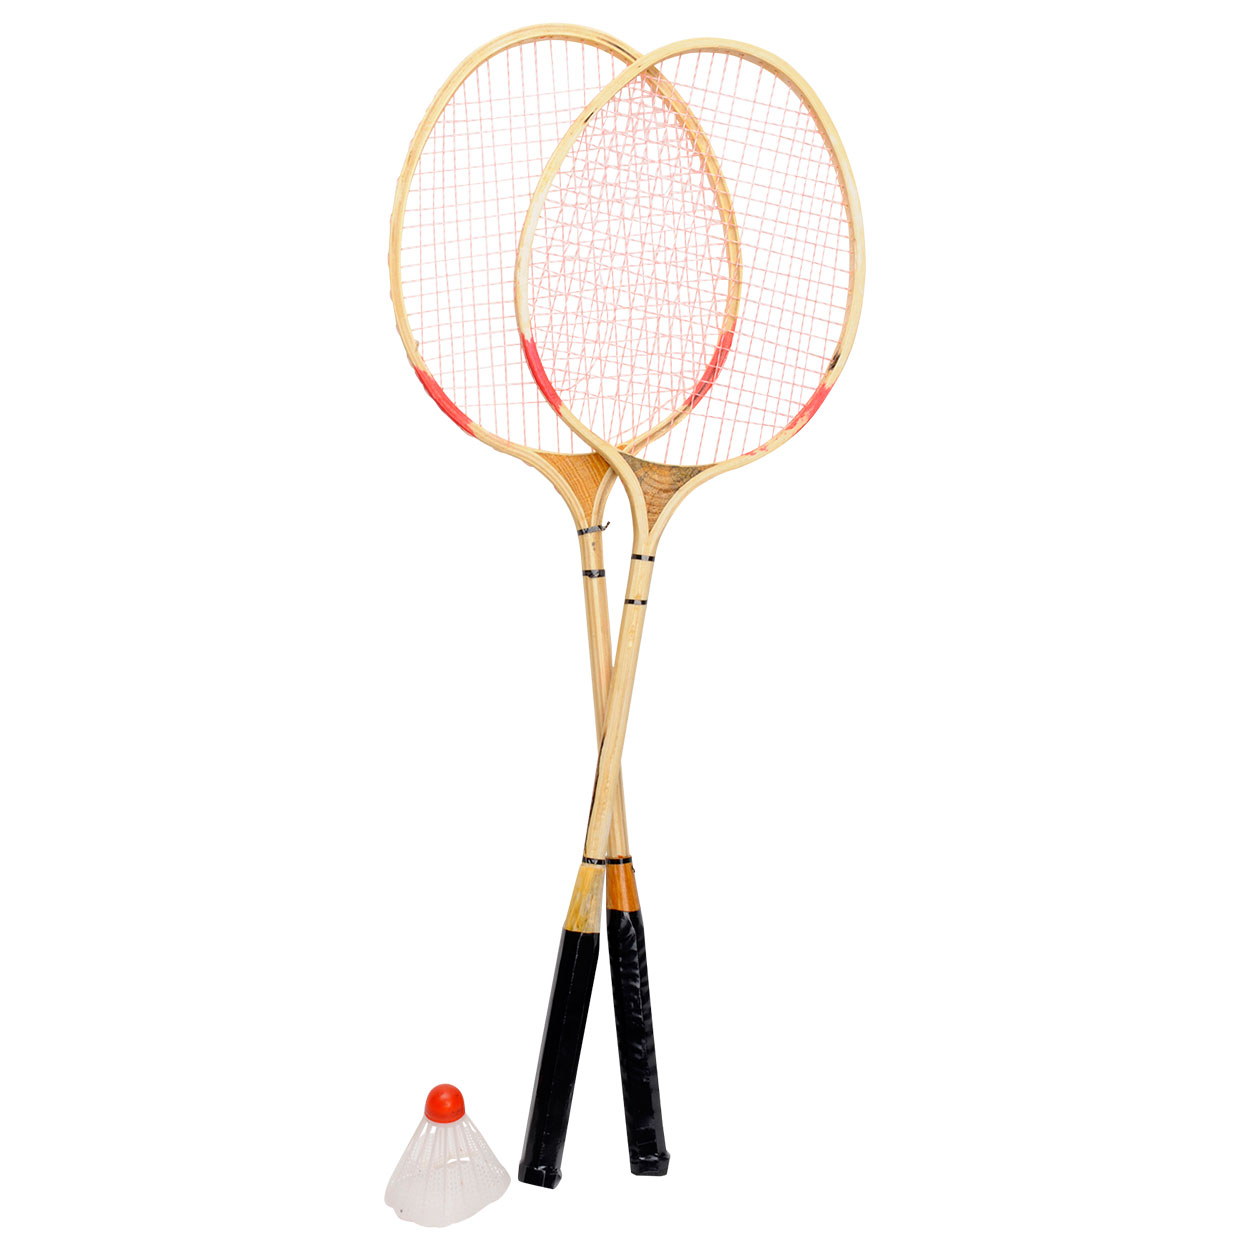 Houten Badmintonset Retro